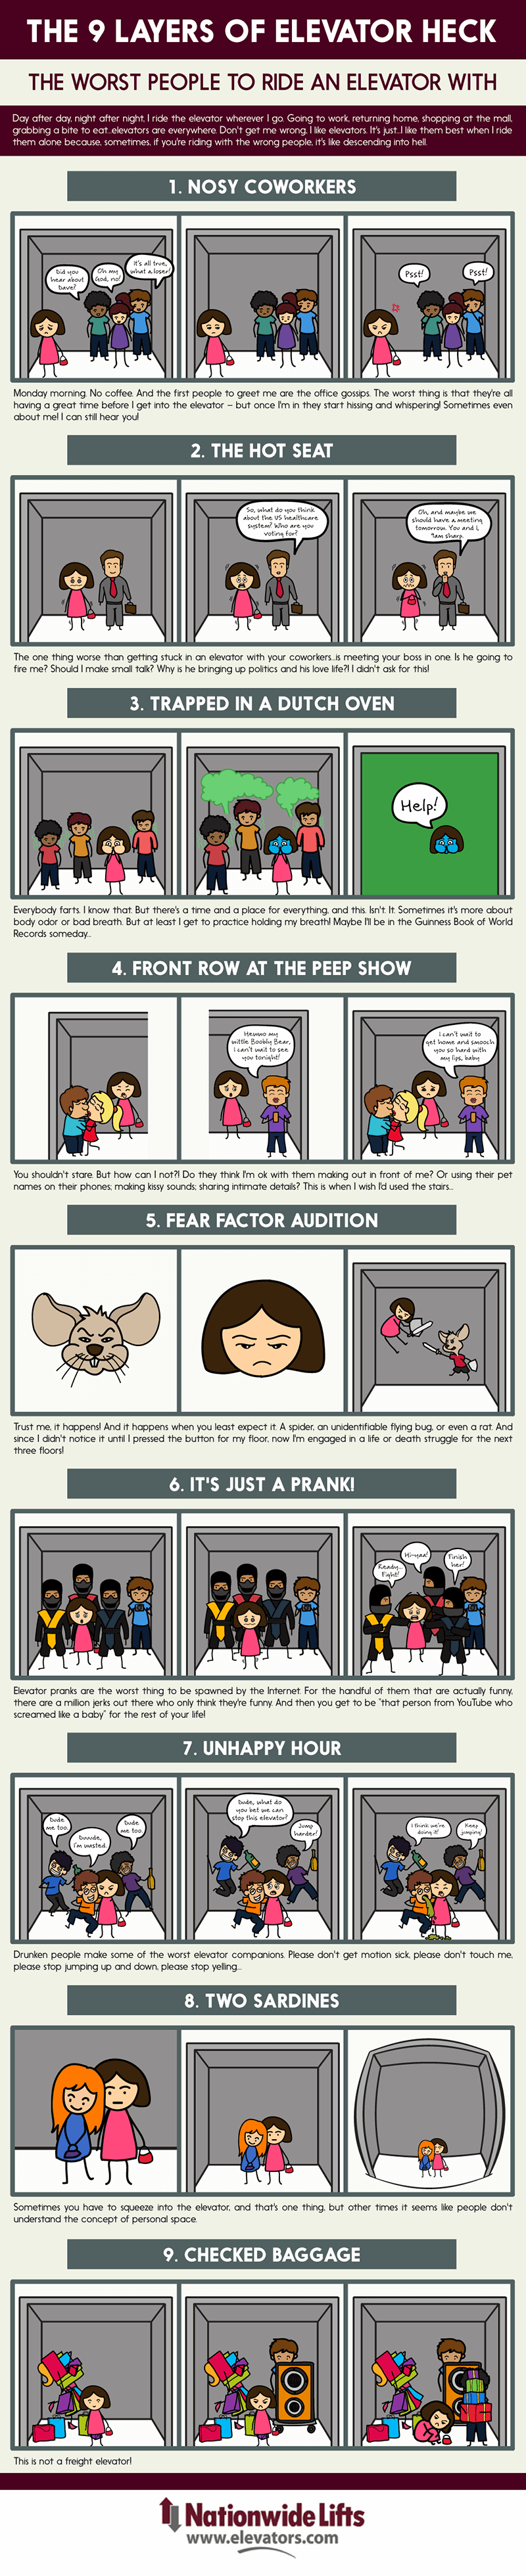 9-worst-people-for-introverts-to-be-with-in-elevators-#infographic